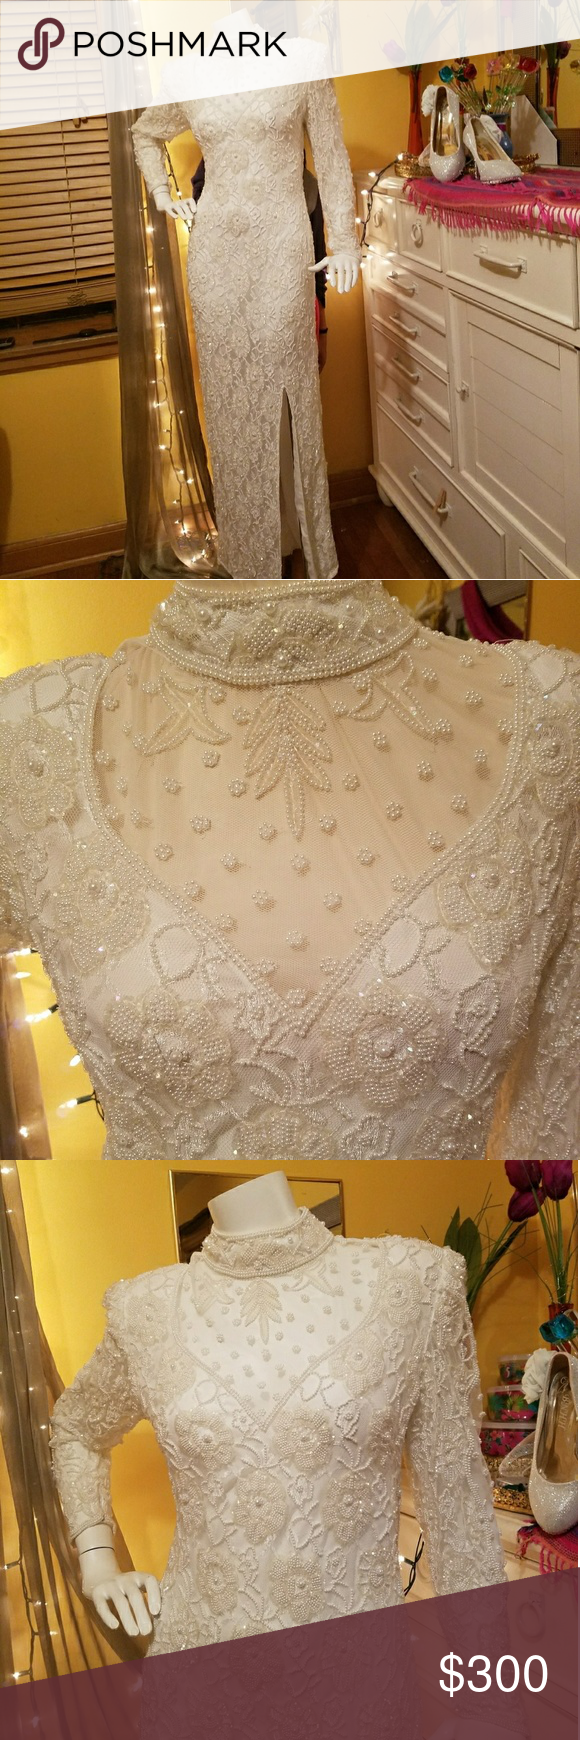 Laurence Kazar White Vintage Beaded Dress Sale This Vintage Wedding Dress Is A Rare Item Beautifully Beaded See Through Lace In Som Vintage Dresses Dresses For Sale Dresses